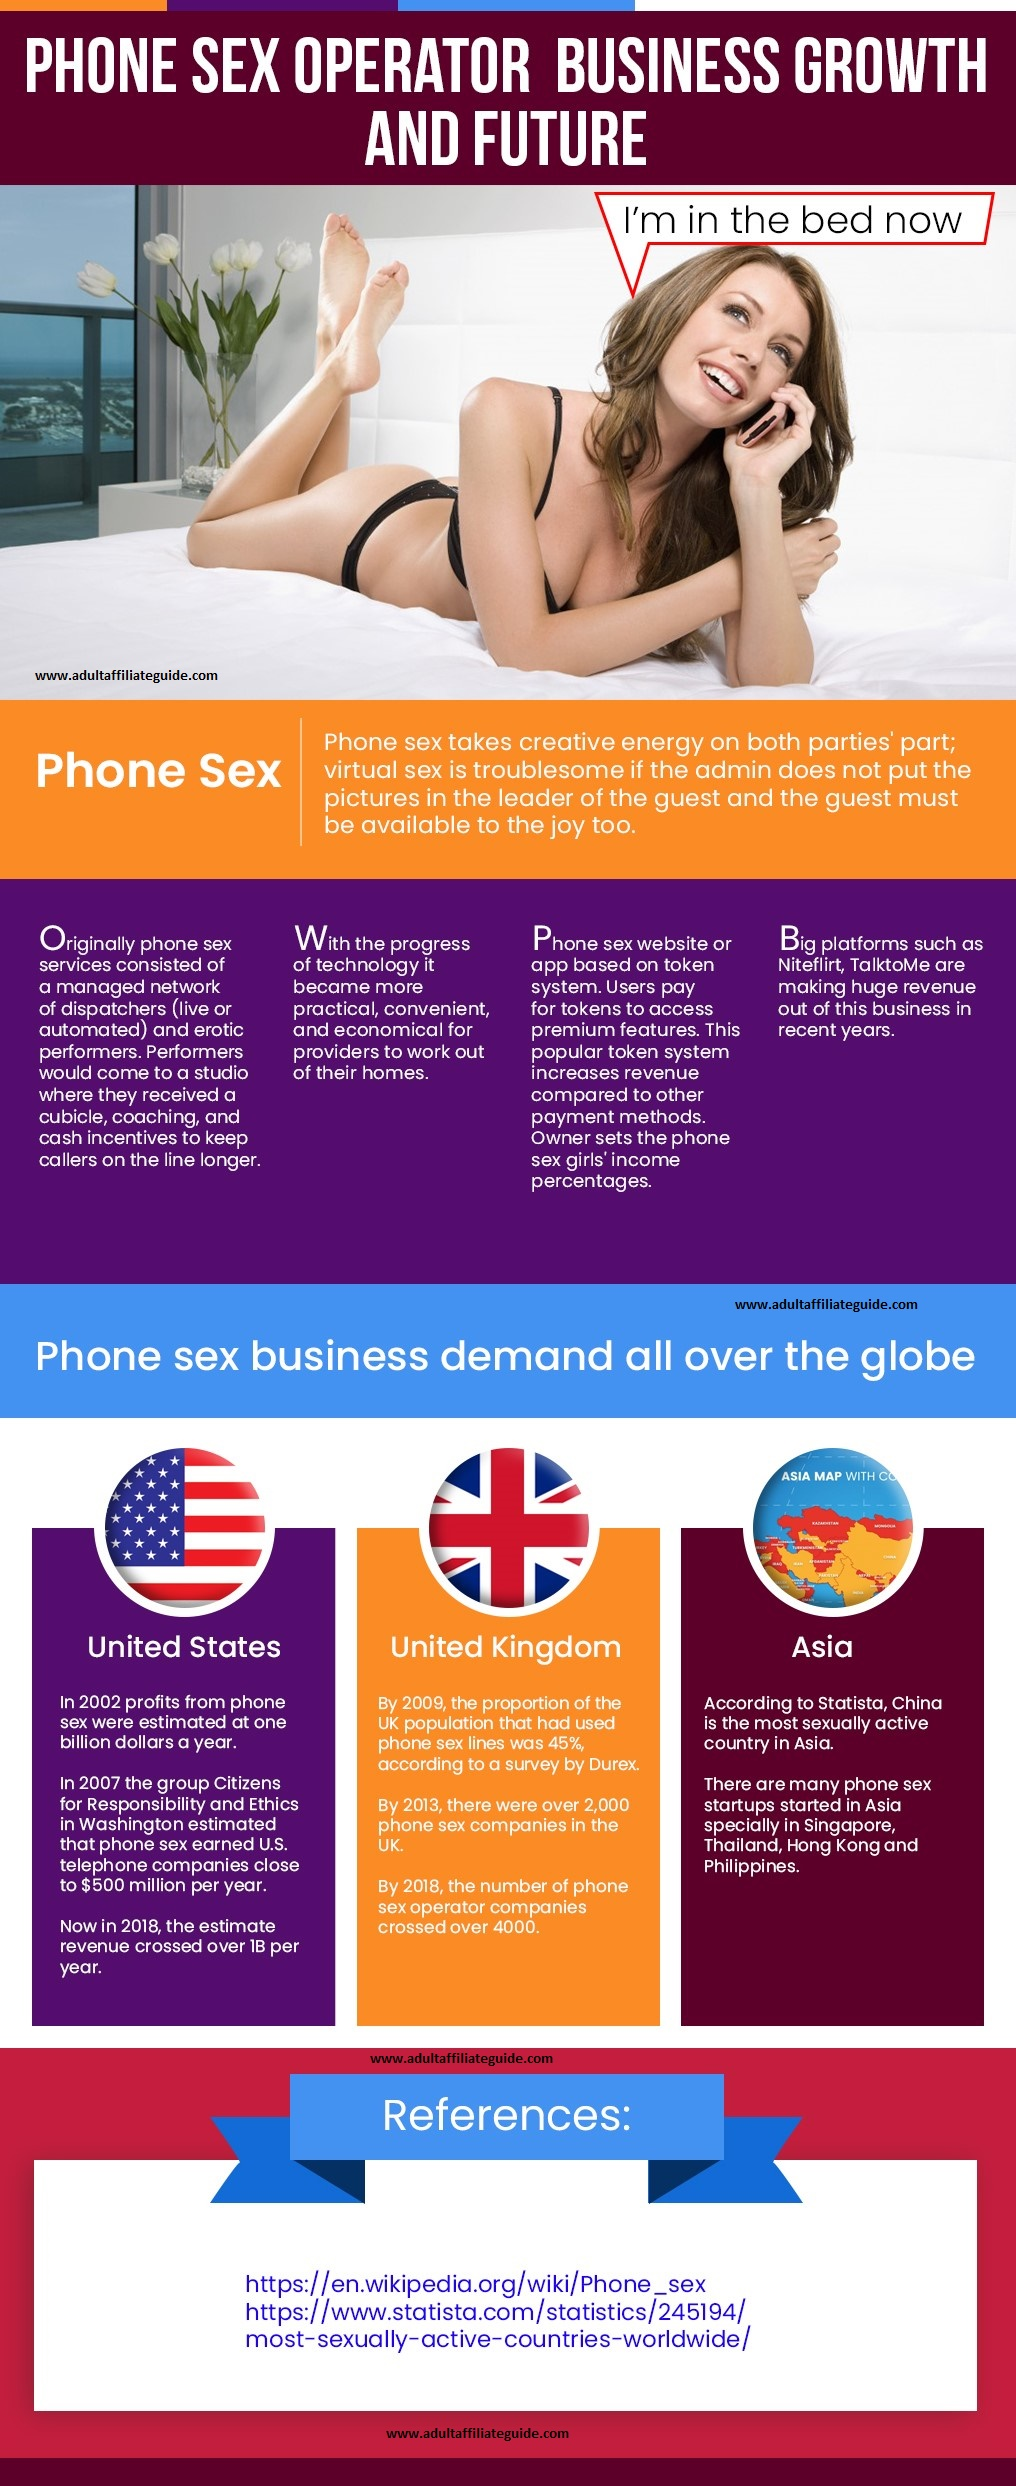 Phone Sex Operator Businesses